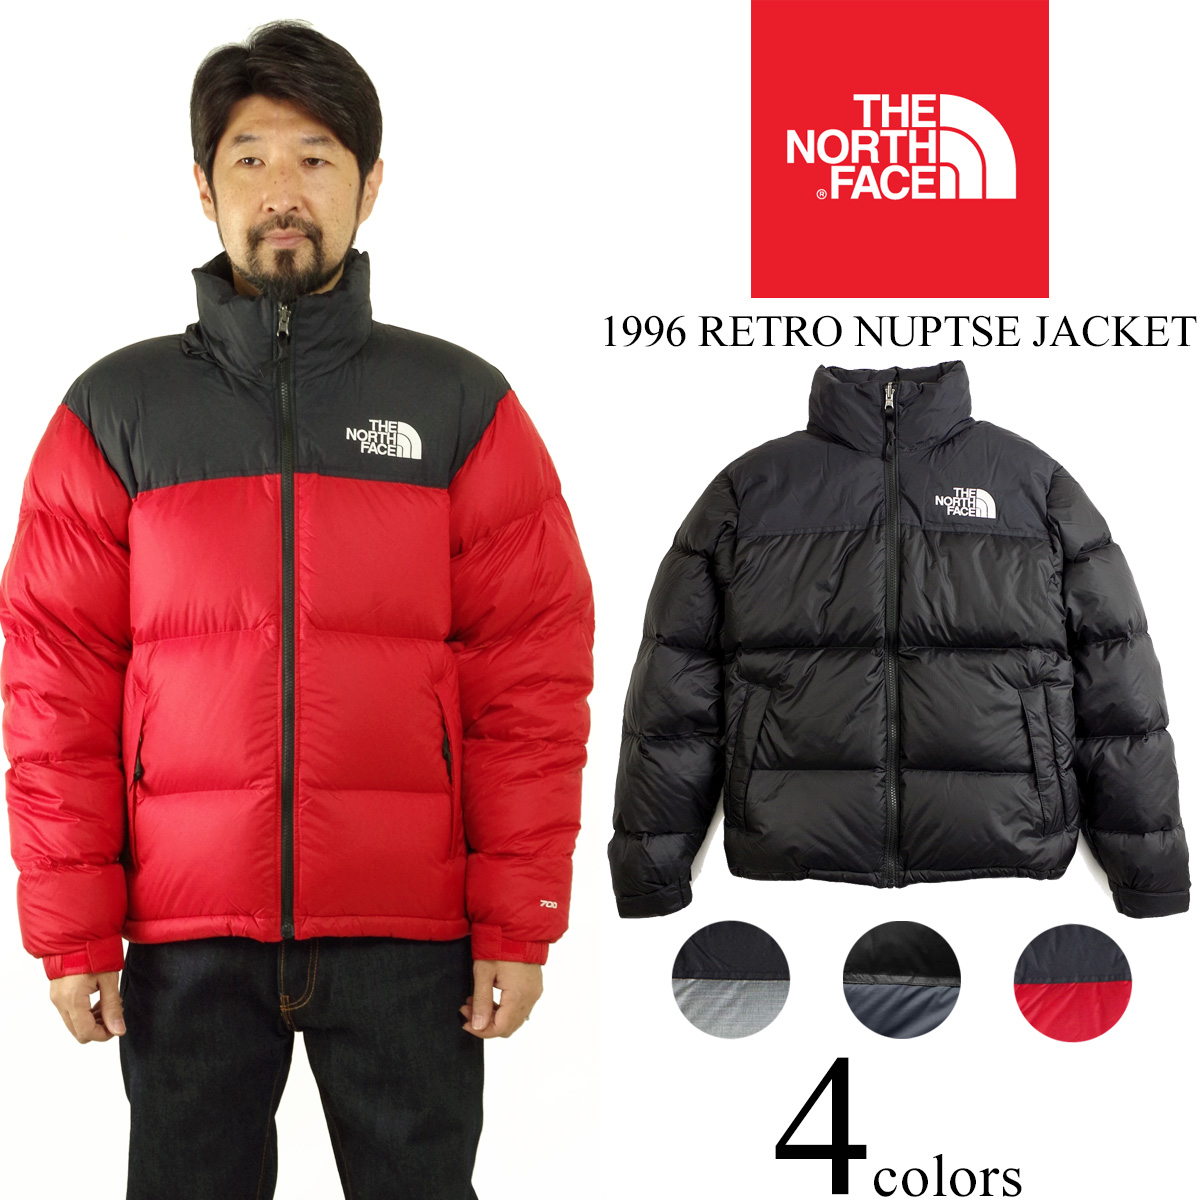 Hypermoderne Jalana: North Face THE NORTH FACE 1996 レトロヌプシジャケット (non KE-79